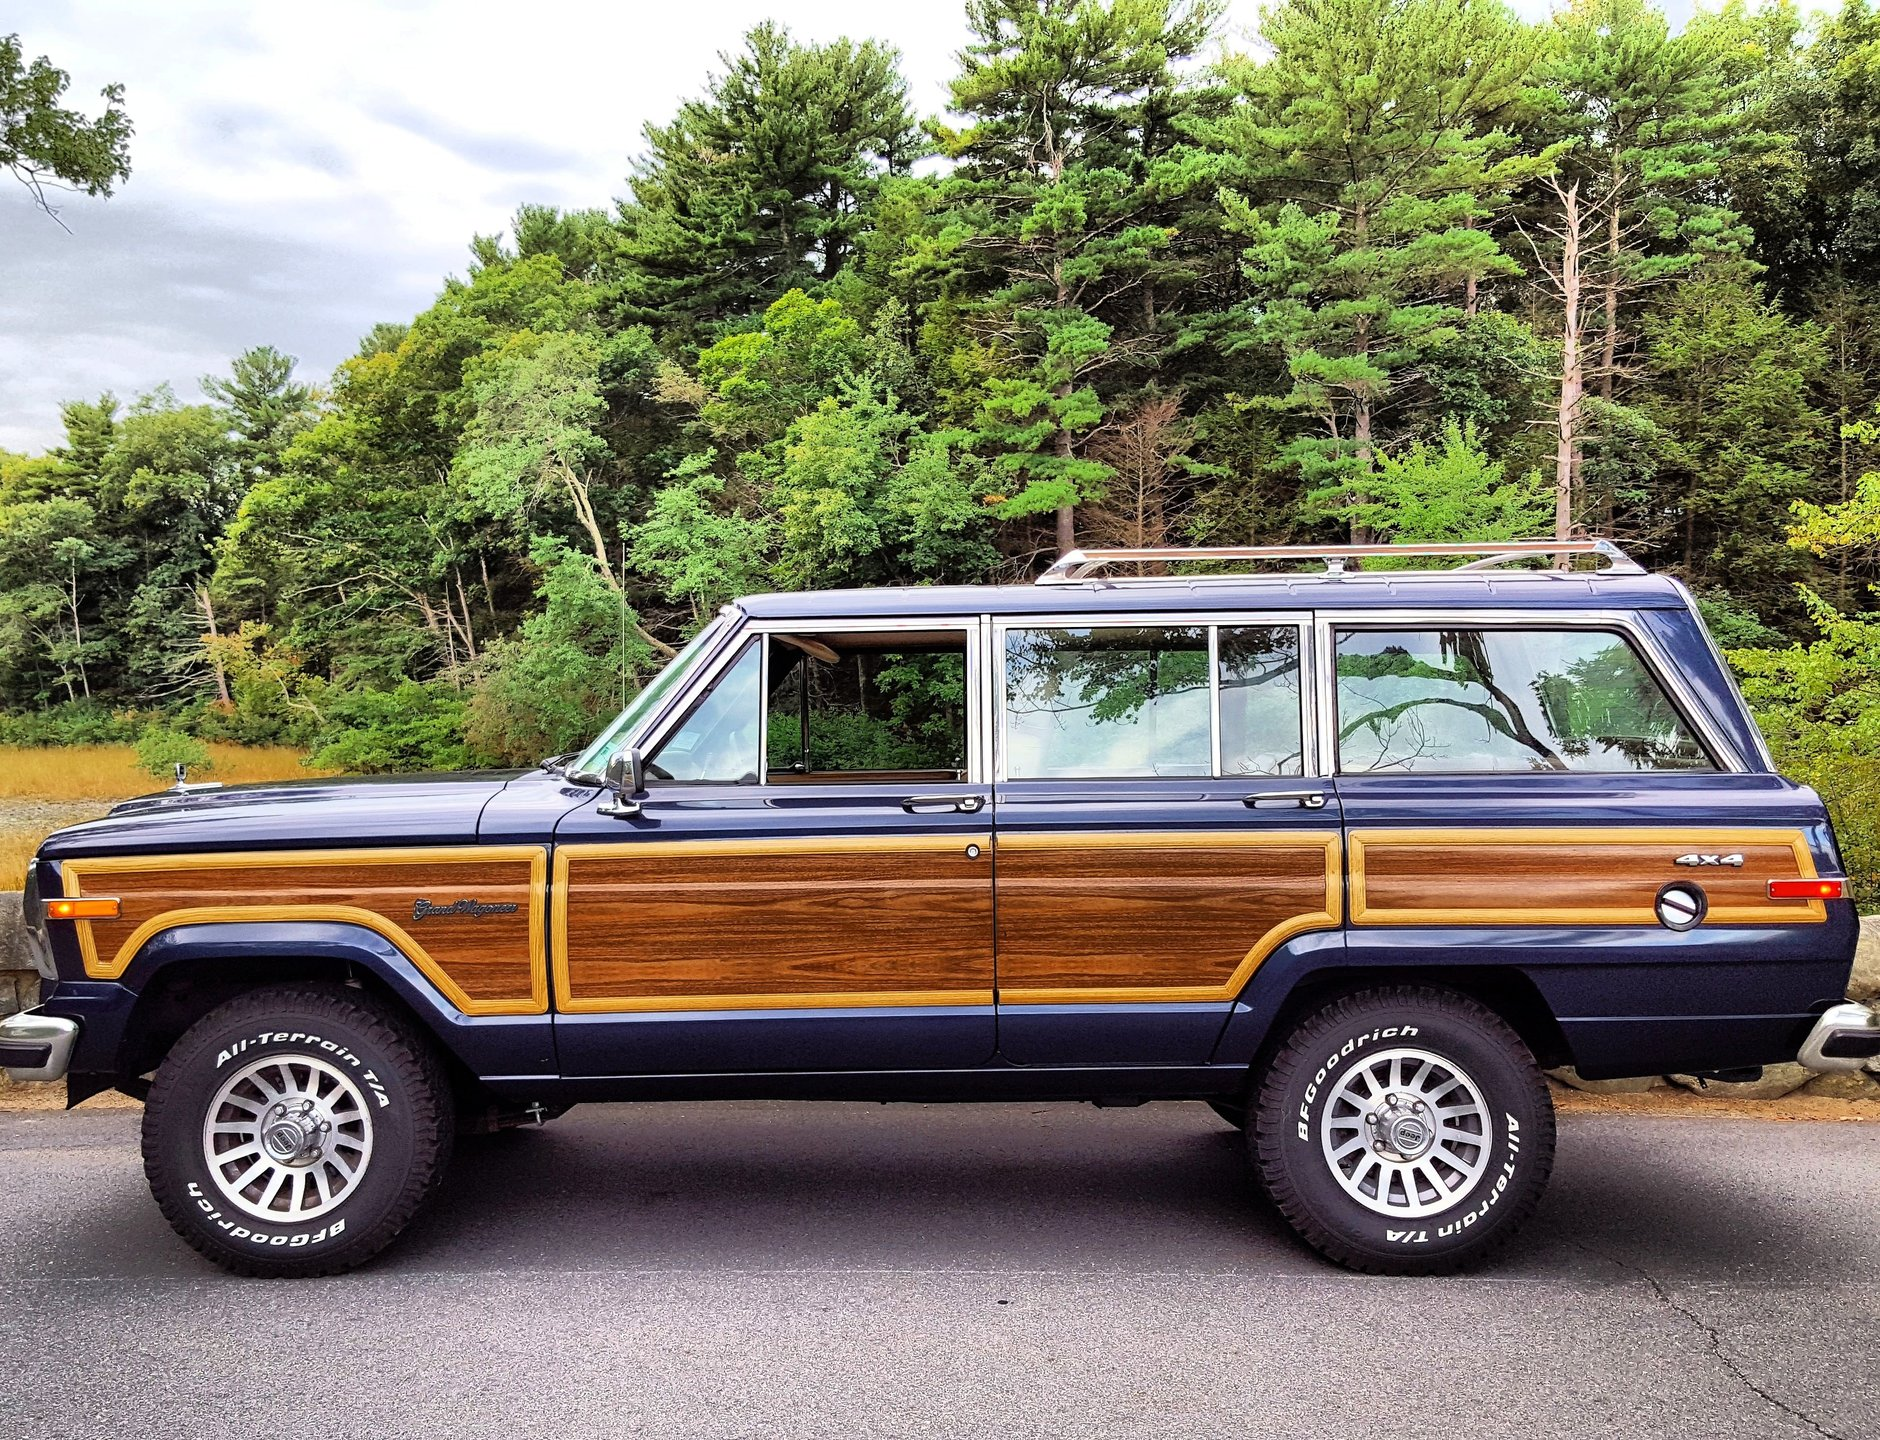 1991 jeep grand wagoneer for sale 83196 mcg. Black Bedroom Furniture Sets. Home Design Ideas